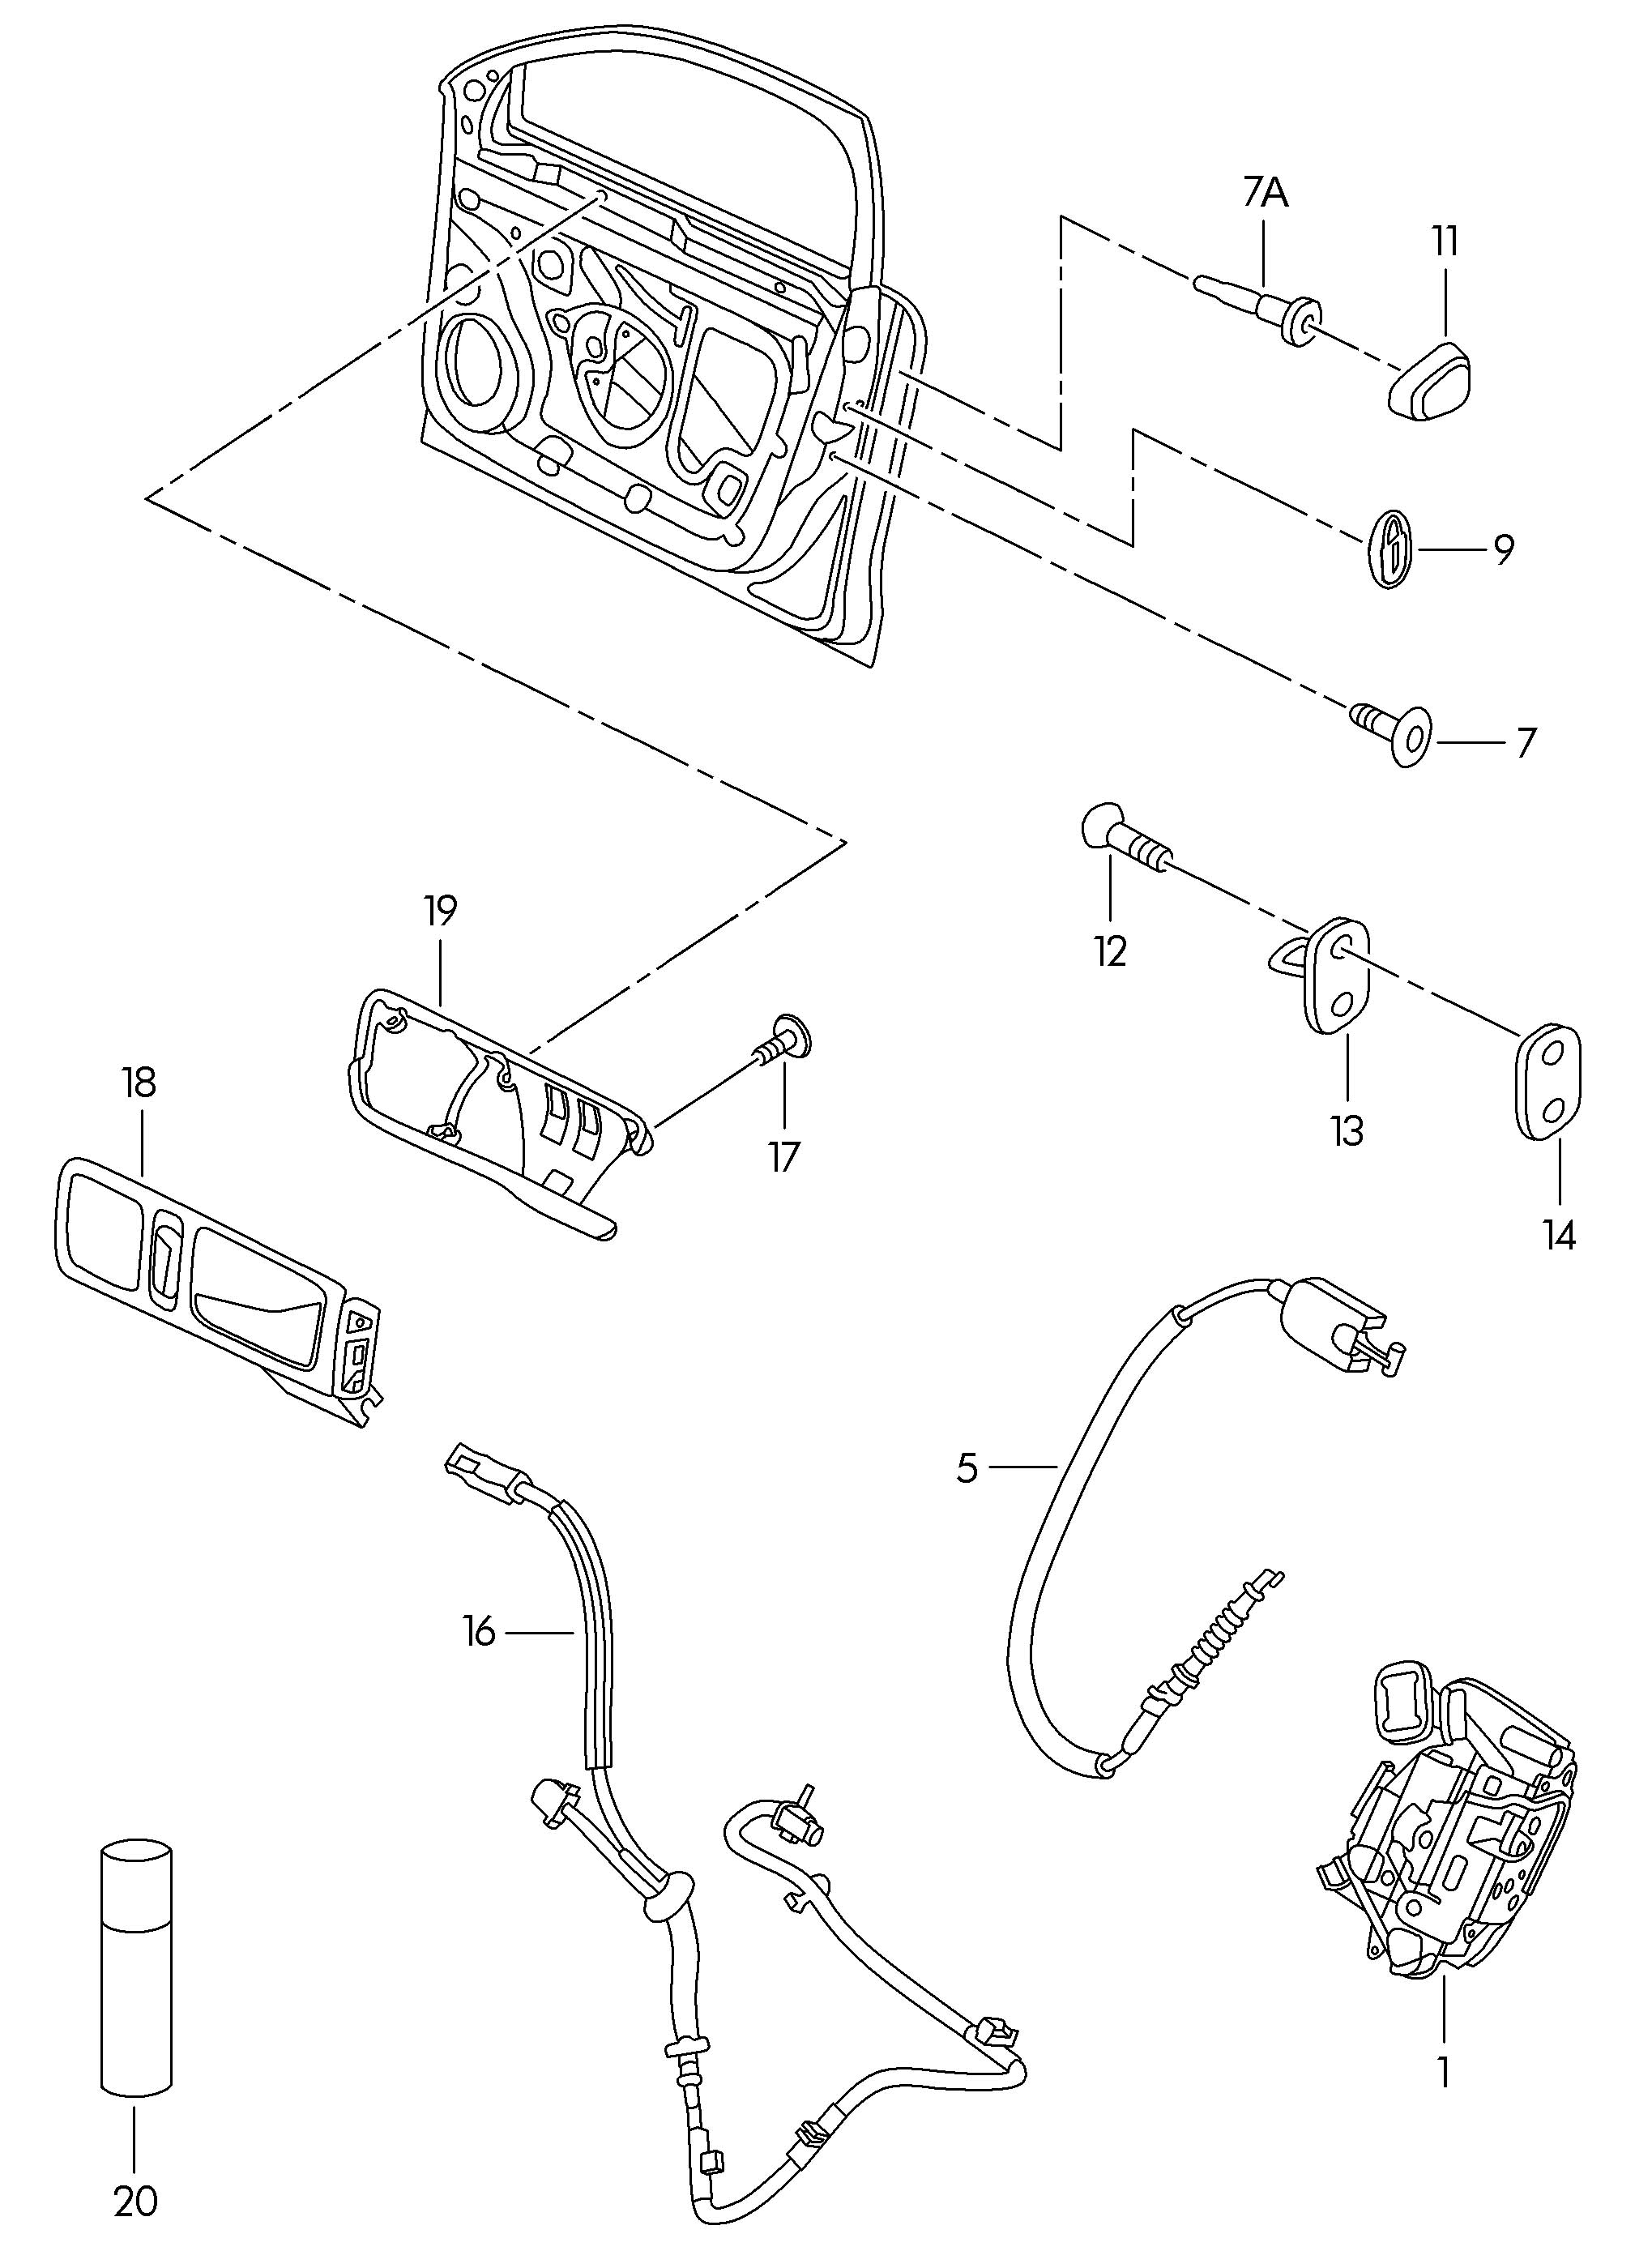 Vw Keyless Remote System Engine Diagram And Wiring Subaru Entry Car Alarm As Well Forester Automatic Transmission Control Likewise 5c3862953f